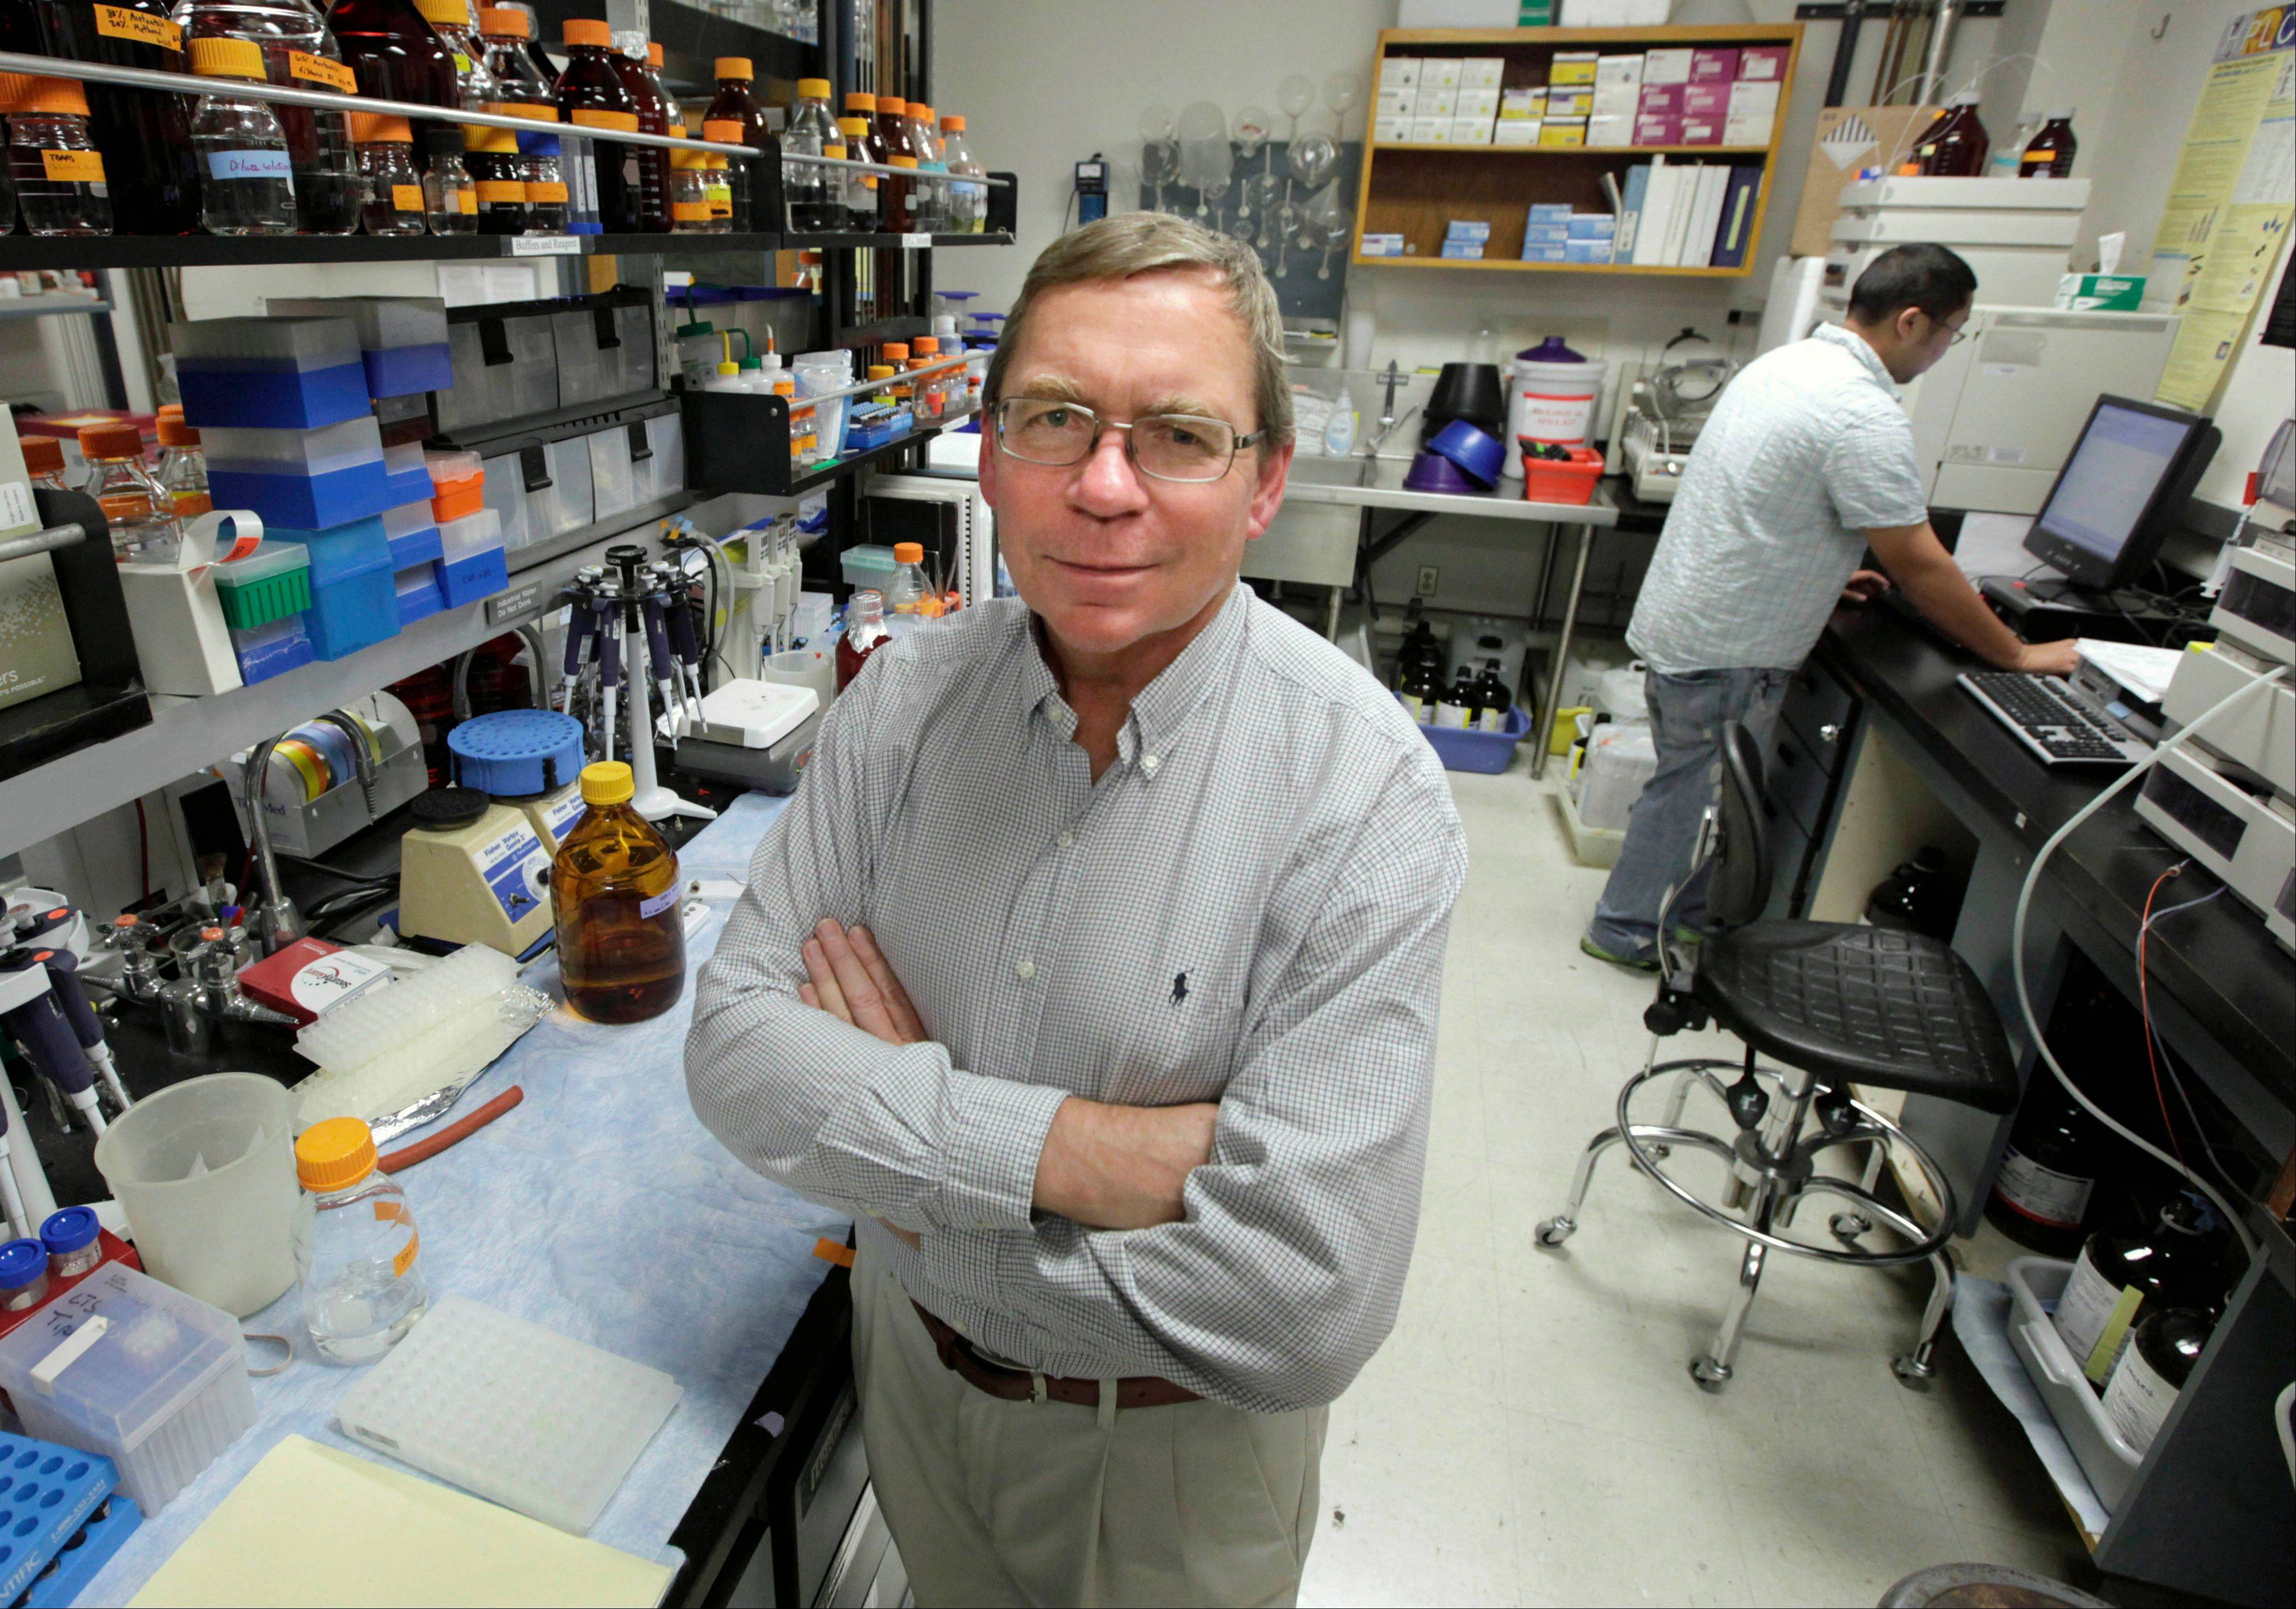 Carl Keen, who serves as chairman of the developmental nutrition program at the University of California, Davis, poses in one of the schools laboratories in Davis, Calif. Keen, whose position is funded by the candy giant, Mars Inc., said his laboratory's findings have pushed science forward through establishing that nutrients in cocoa powder can lower heart disease risk.